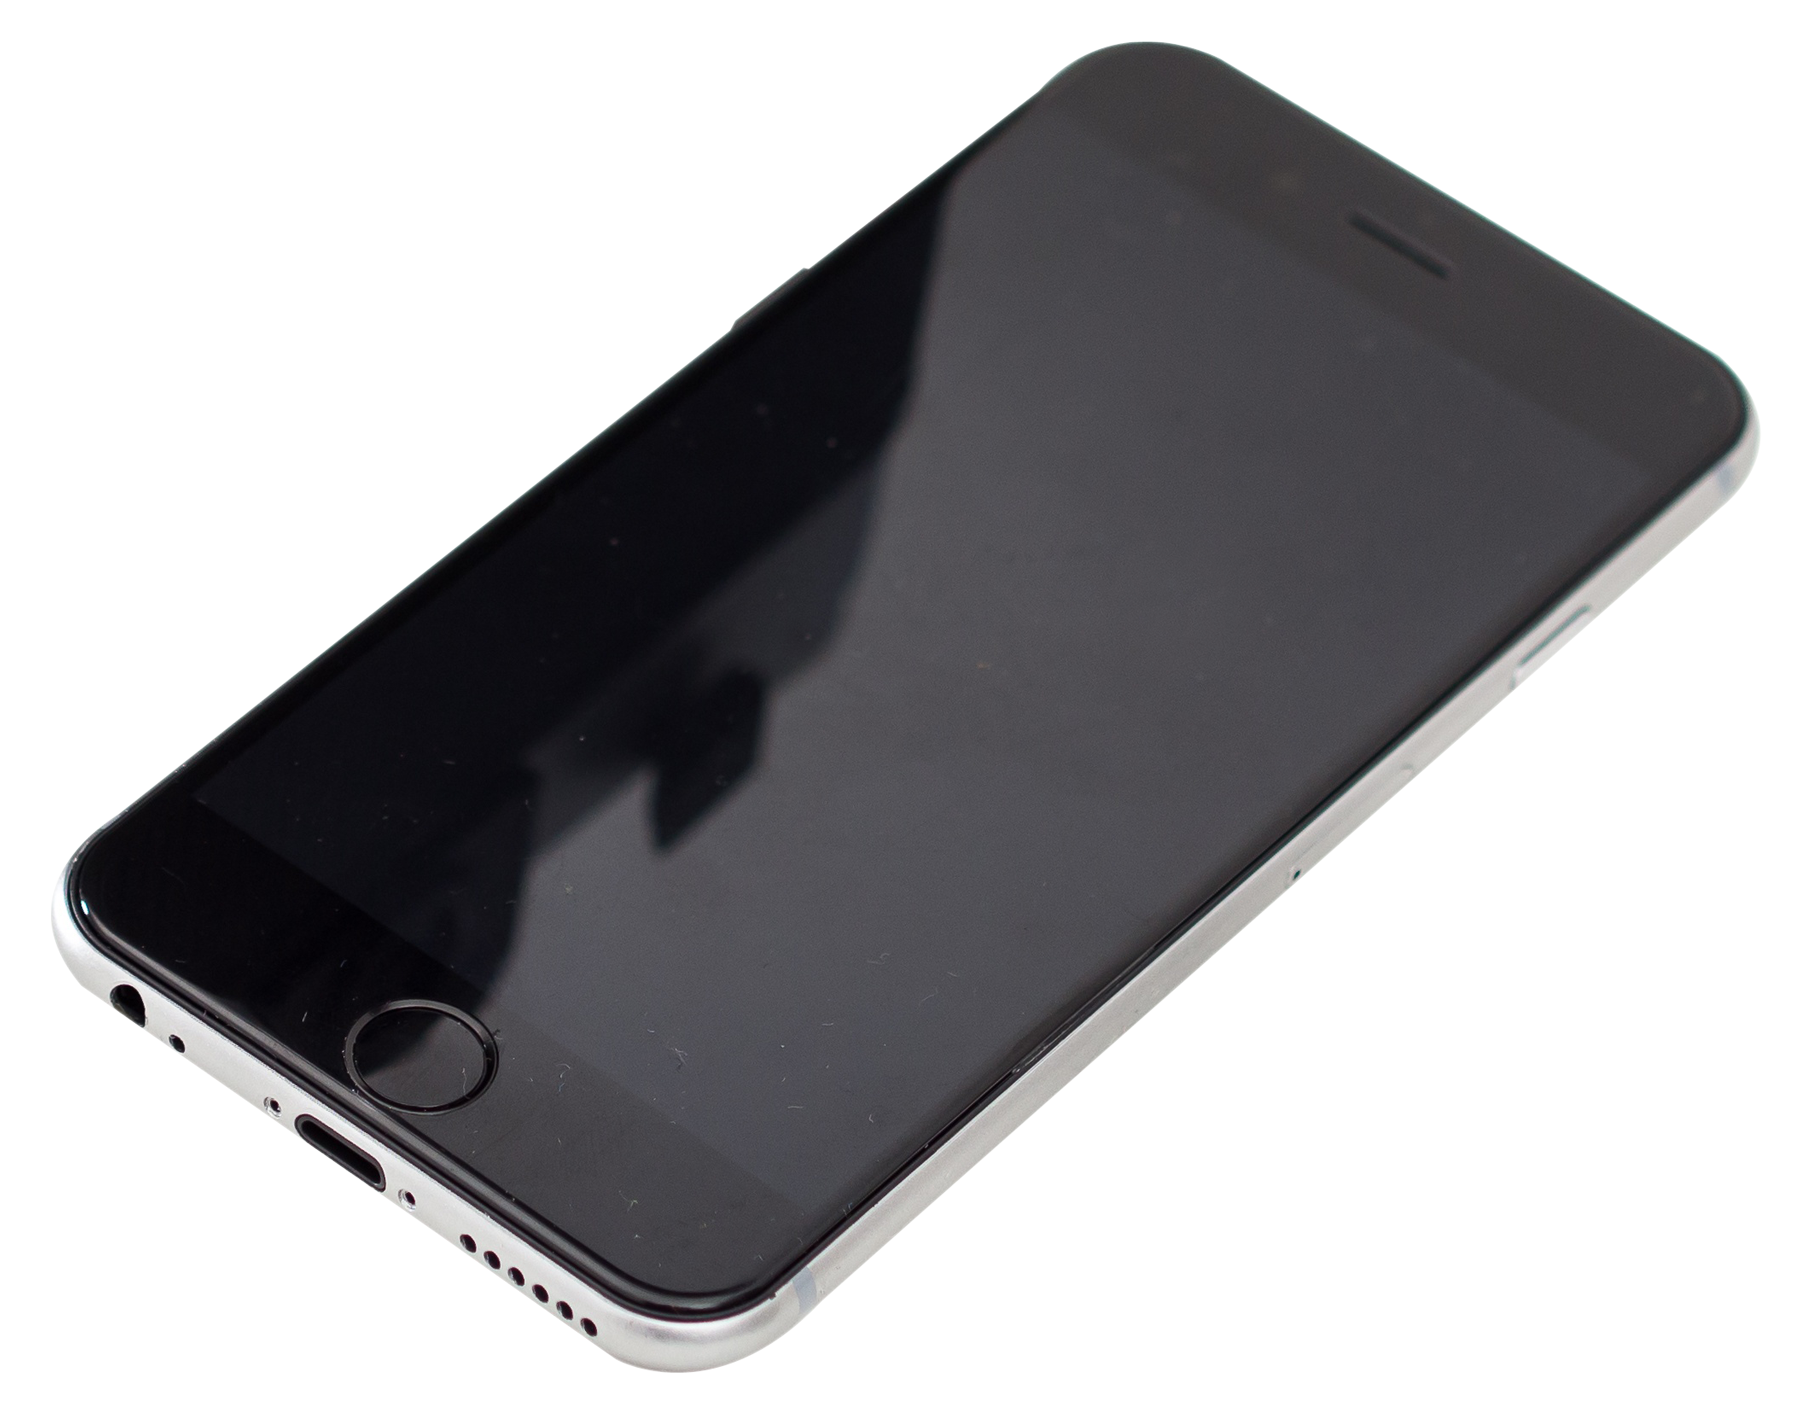 Download Apple Iphone Top View Png Image Iphone Apple Iphone Apple